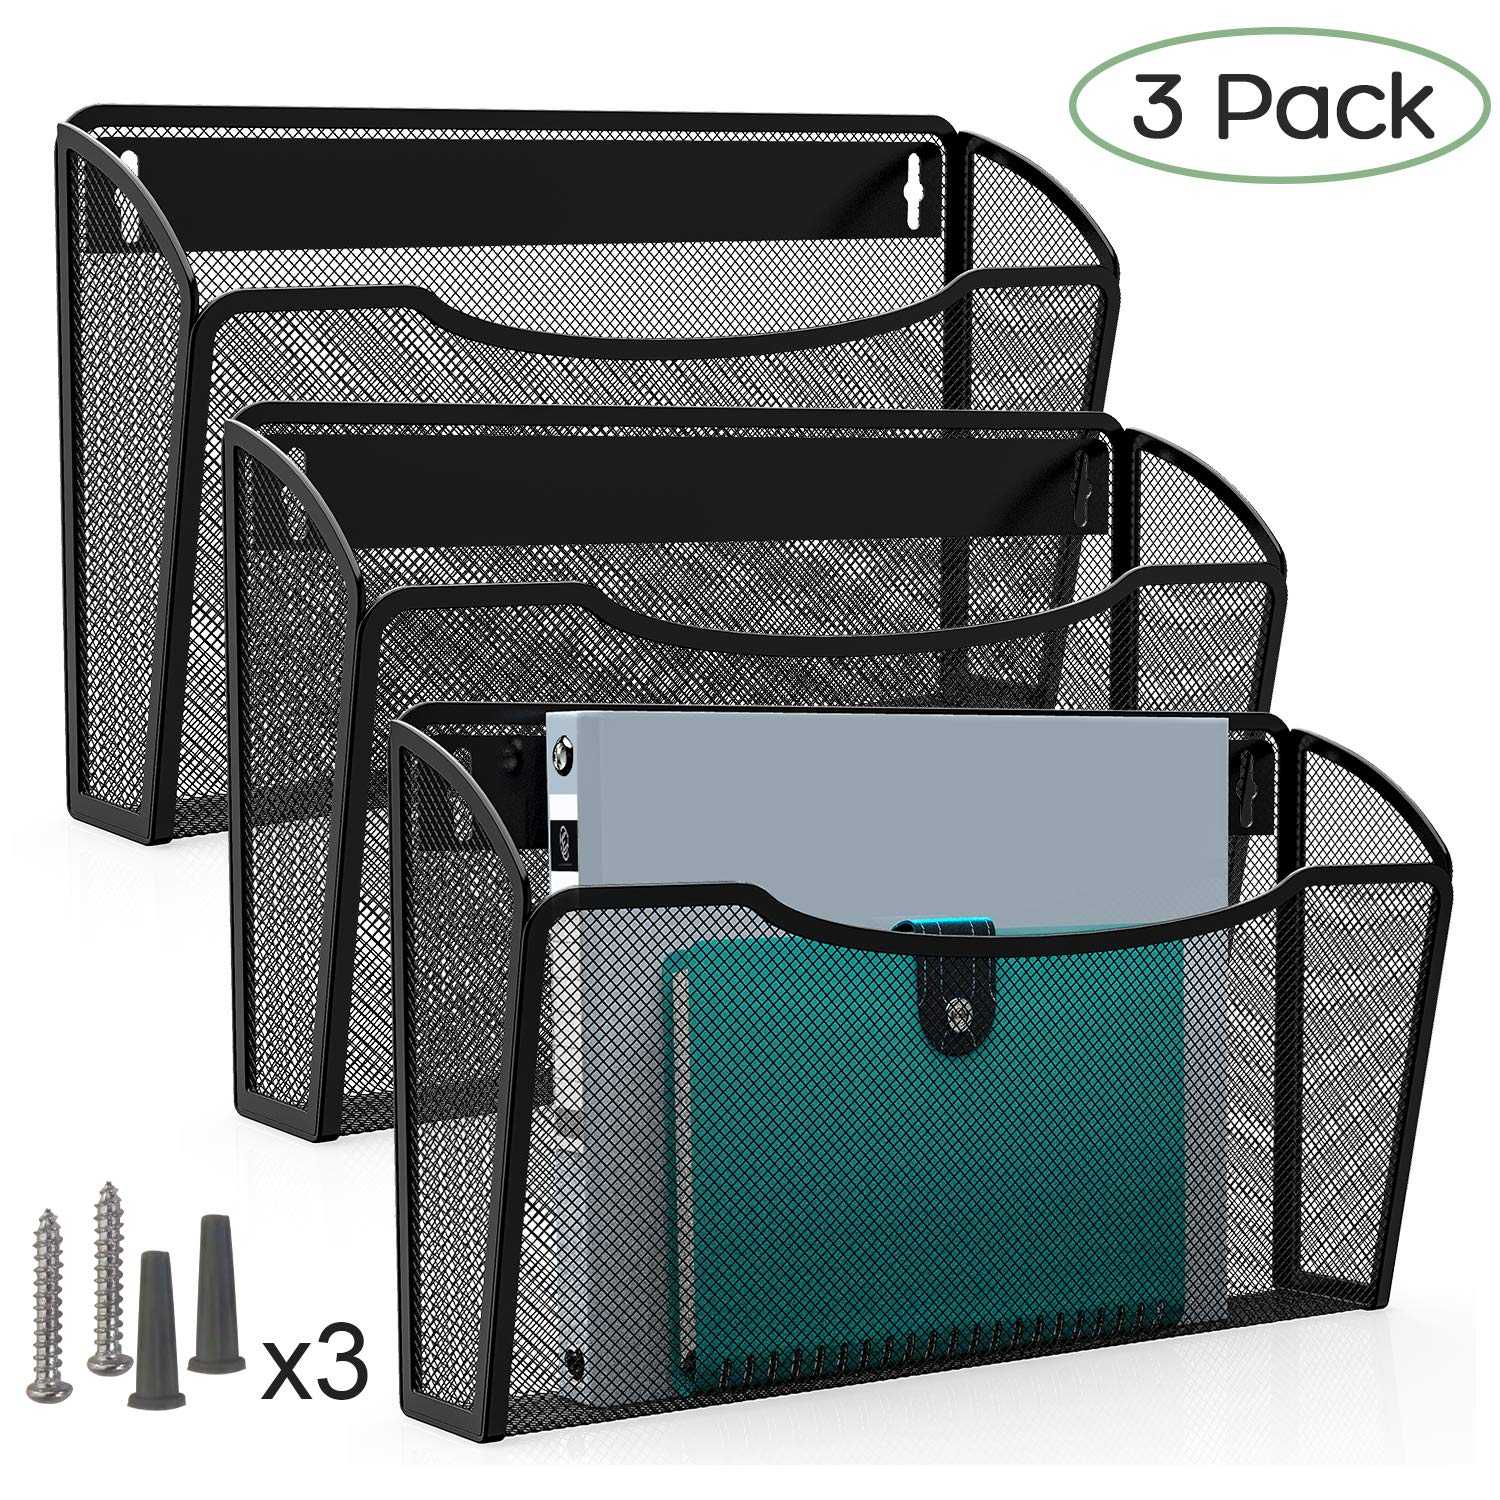 MaxGear 3 Pack Wall File Holder Hanging Wall Files Organizer Wall Hanging File Folders Mail Basket Wall Pocket Organizers Wall Mounted File Holders for Home and Office, Mesh Steel, Black by MaxGear